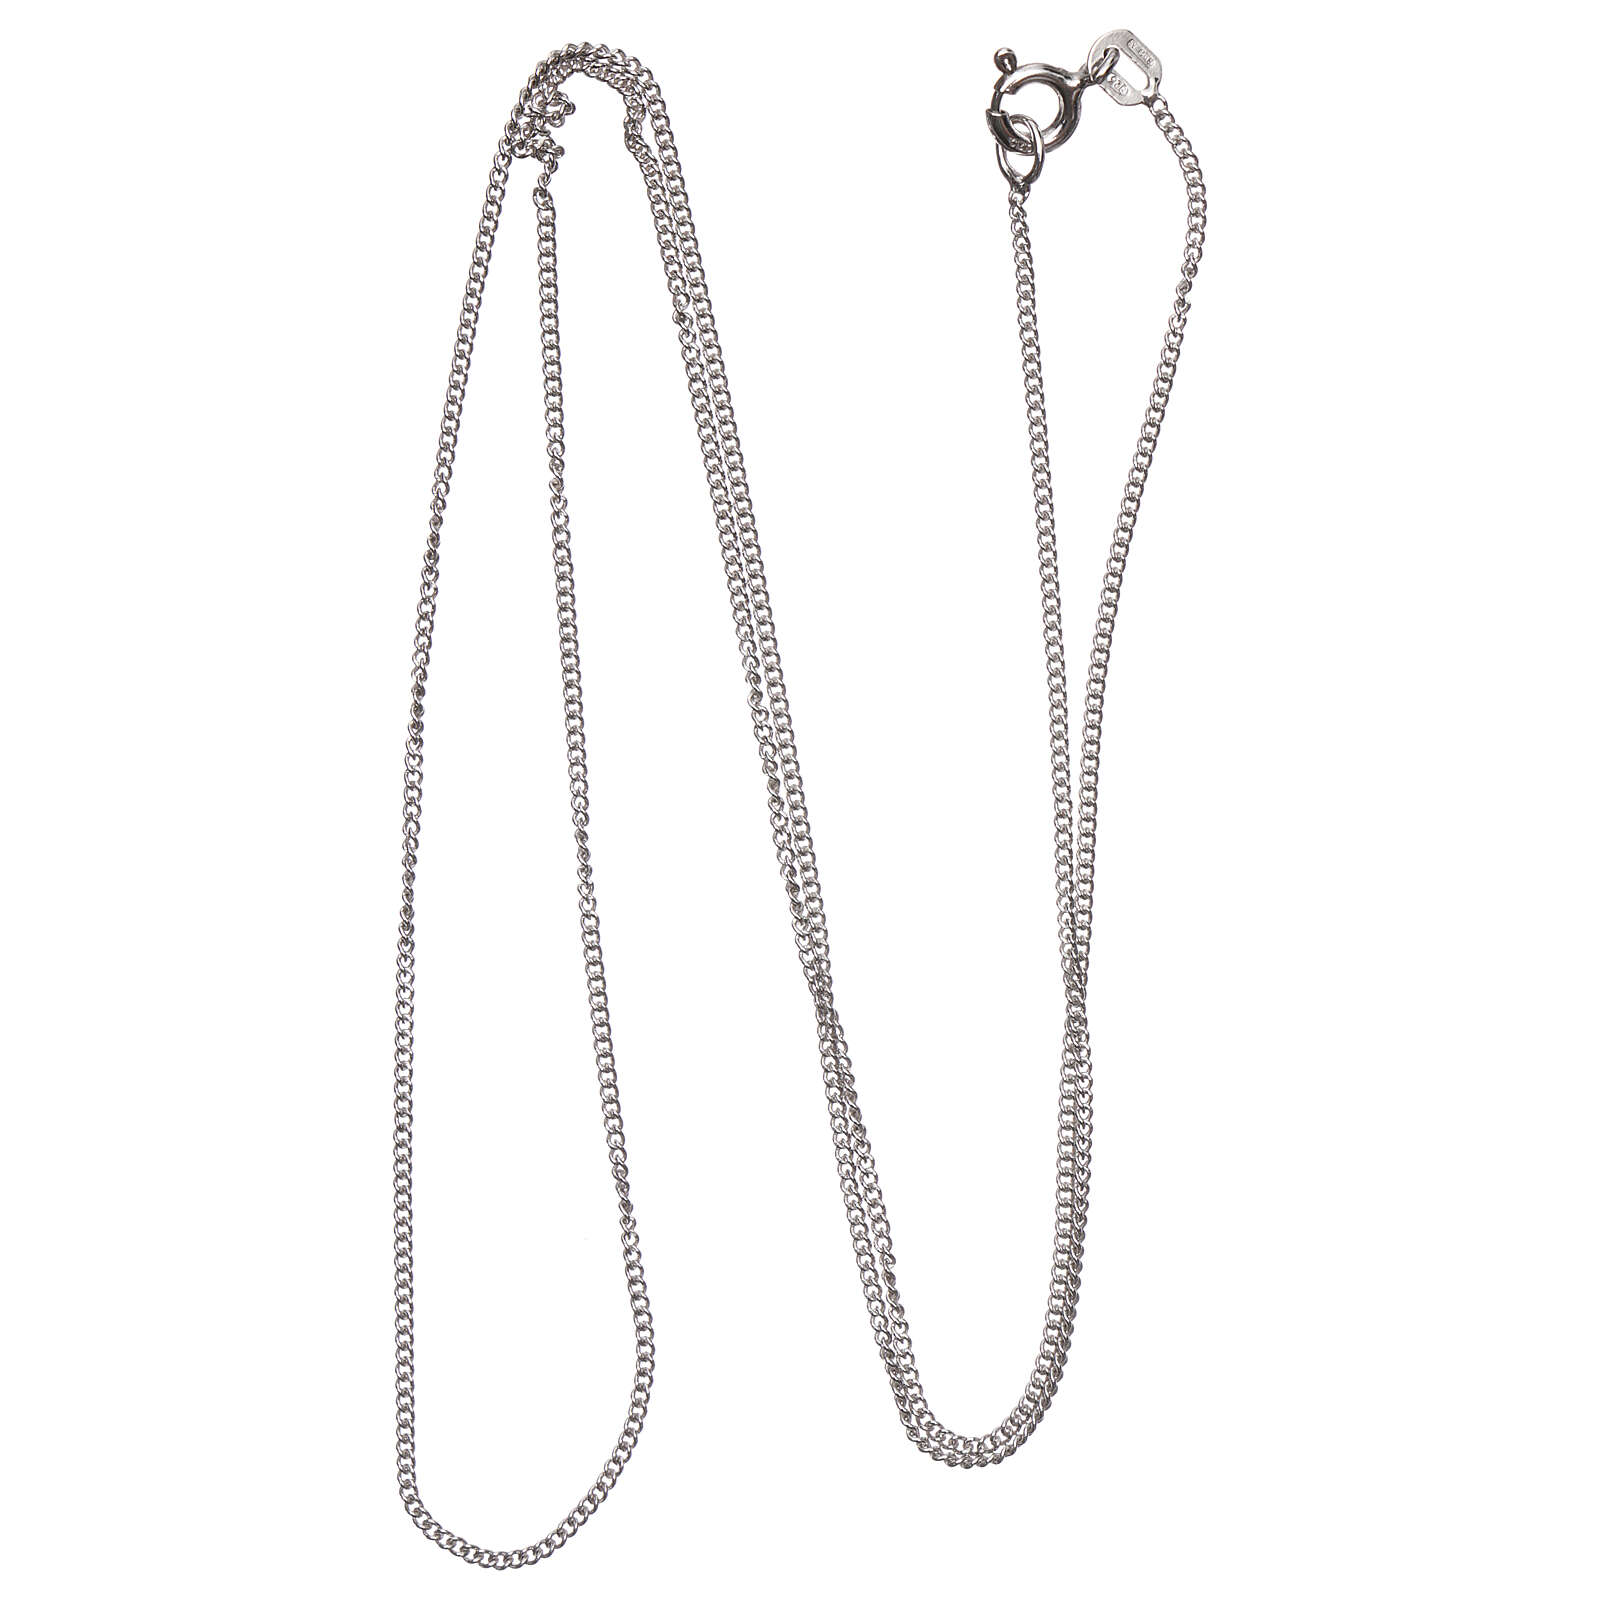 Grumetta chain 925 sterling silver finished in rhodium, 19.69 in length 4